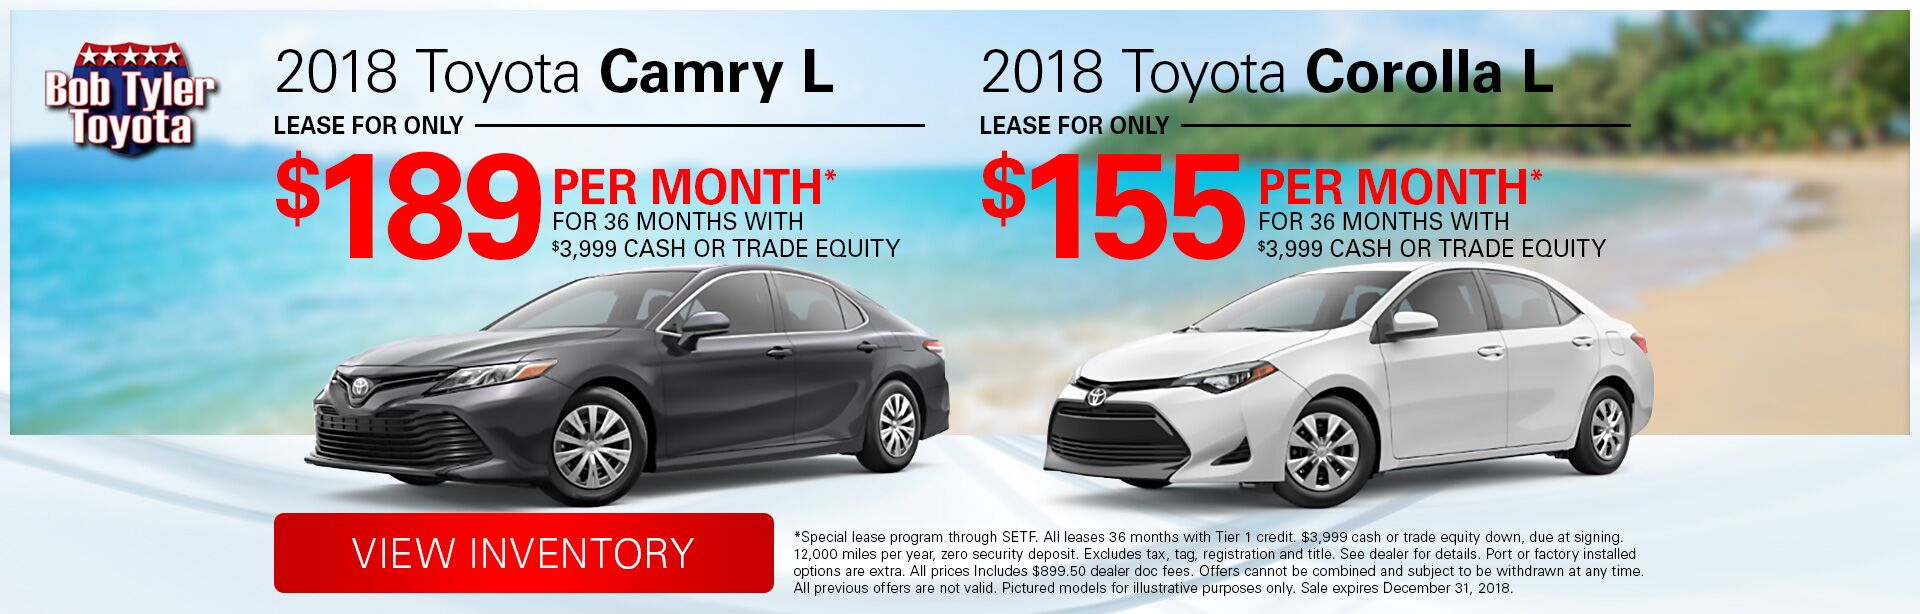 Camry and Corolla L